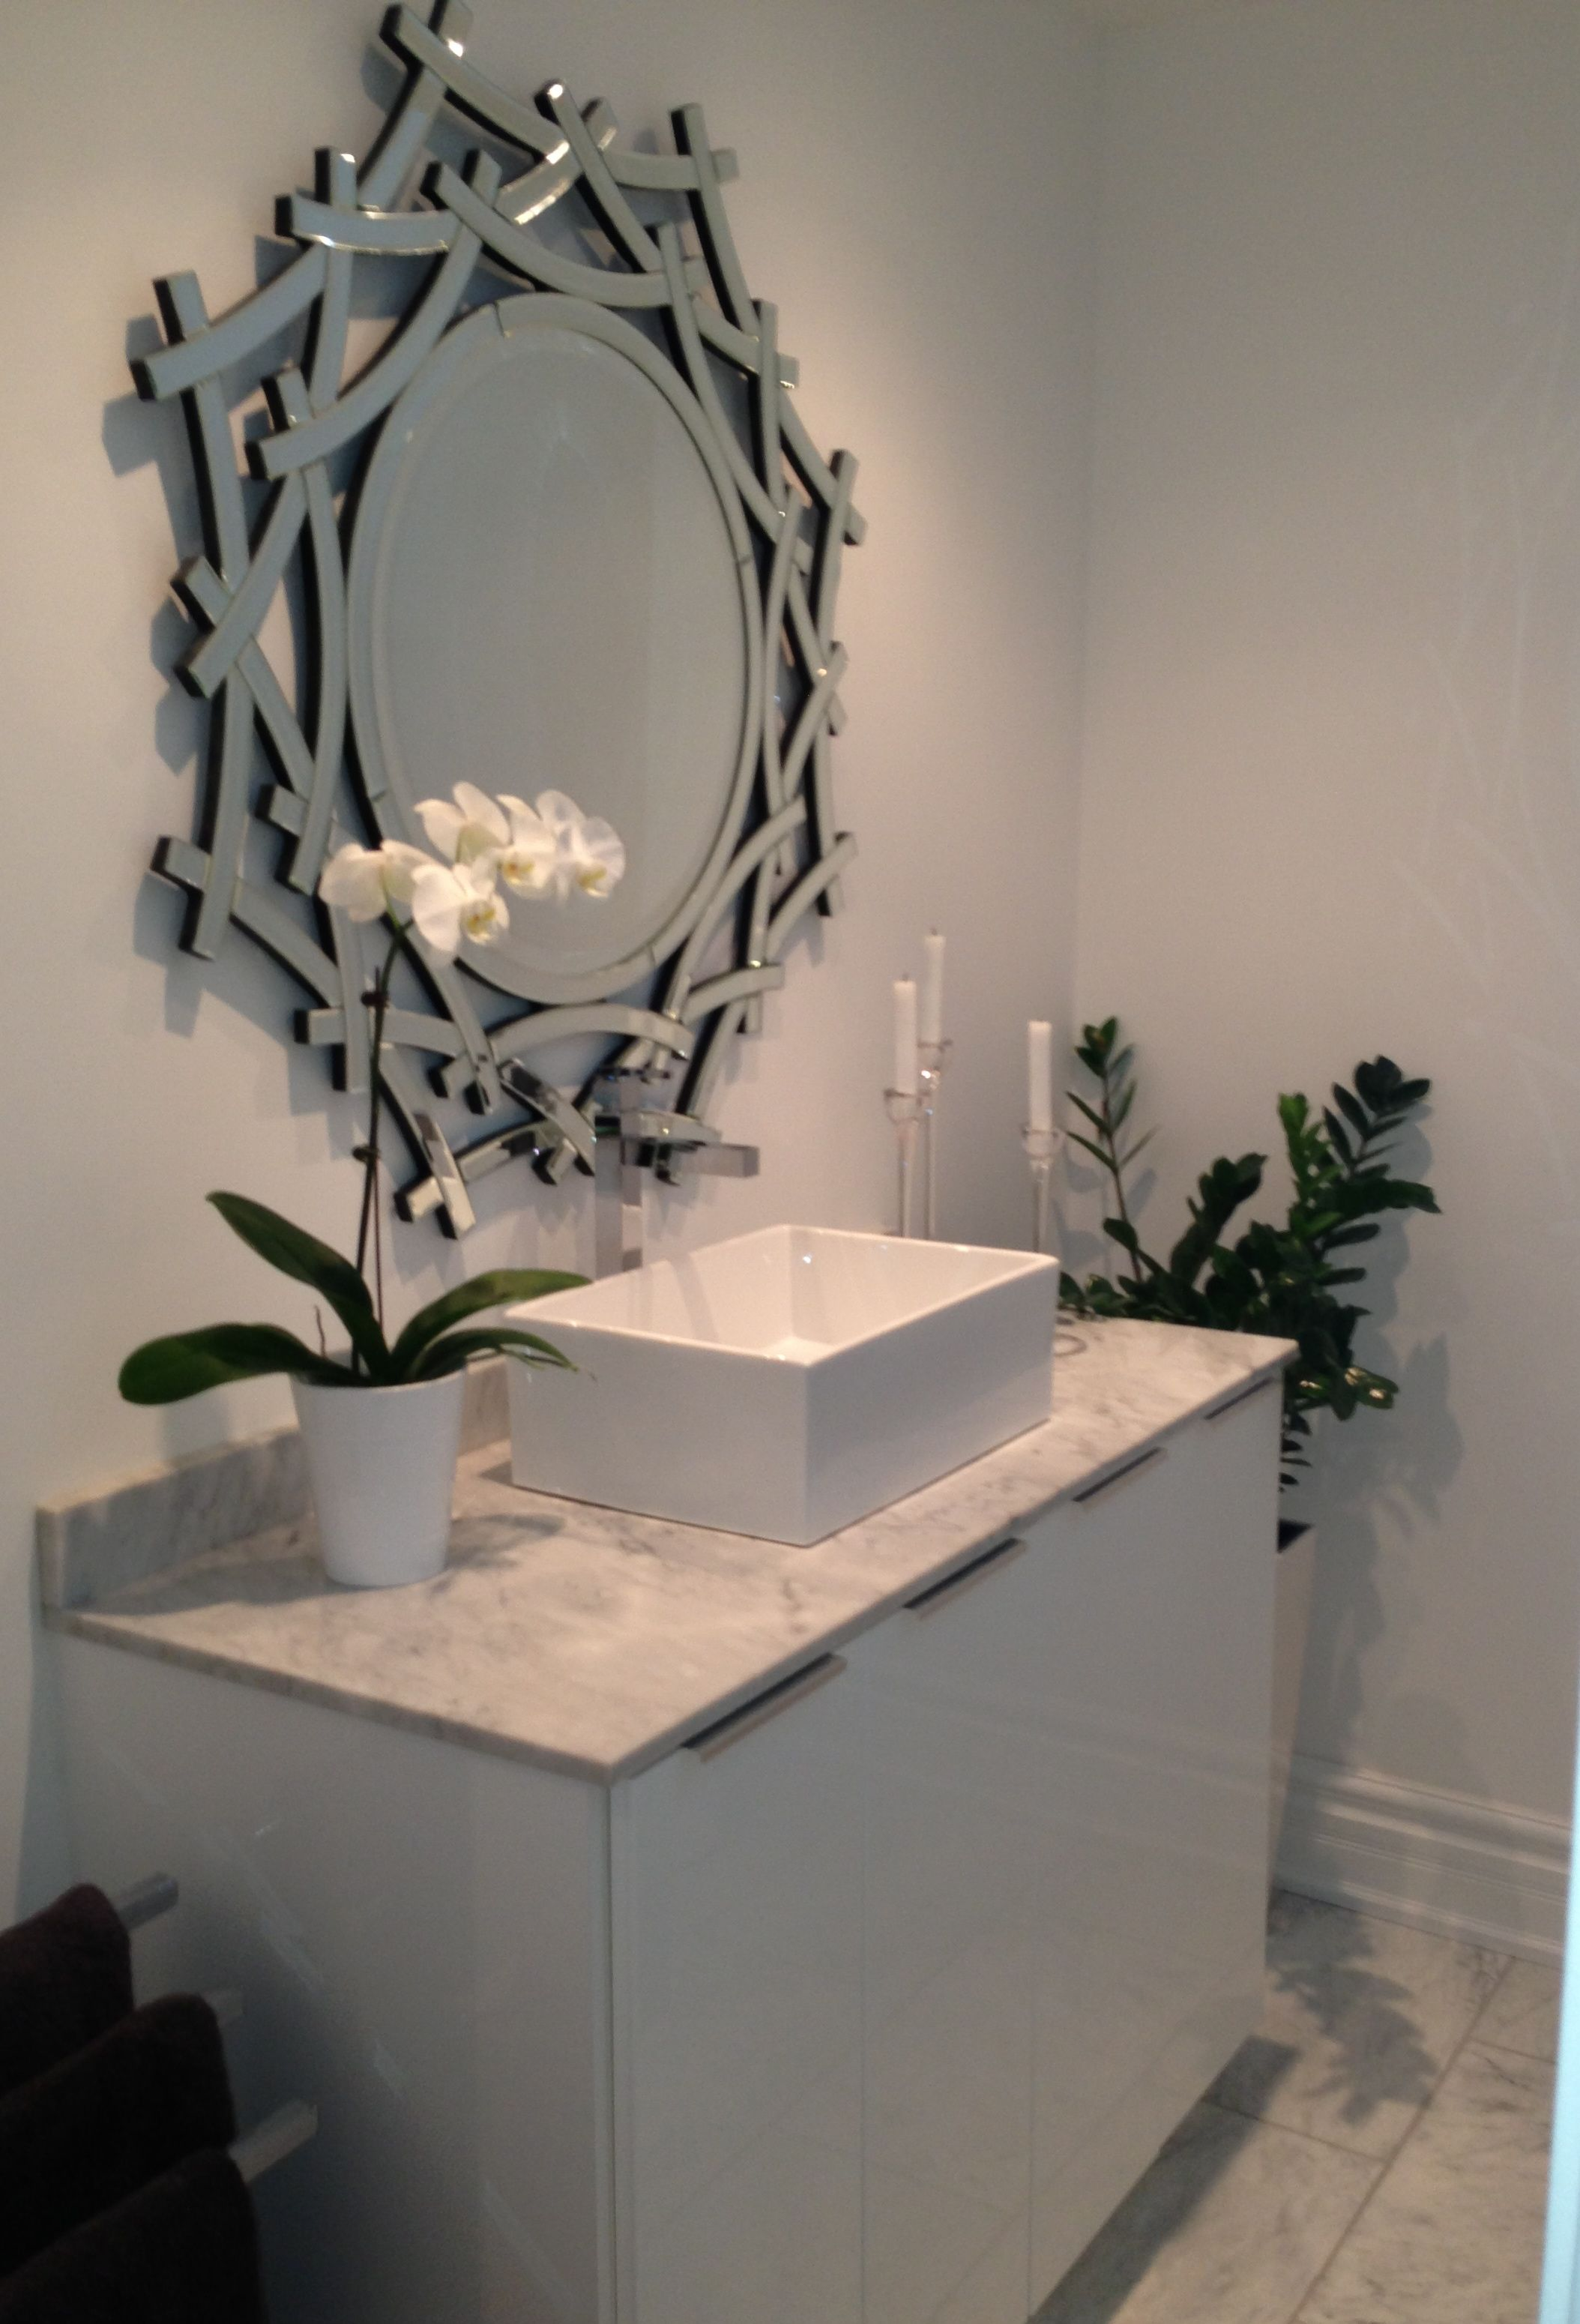 High gloss white bathroom vanity with vessel sink that I ...